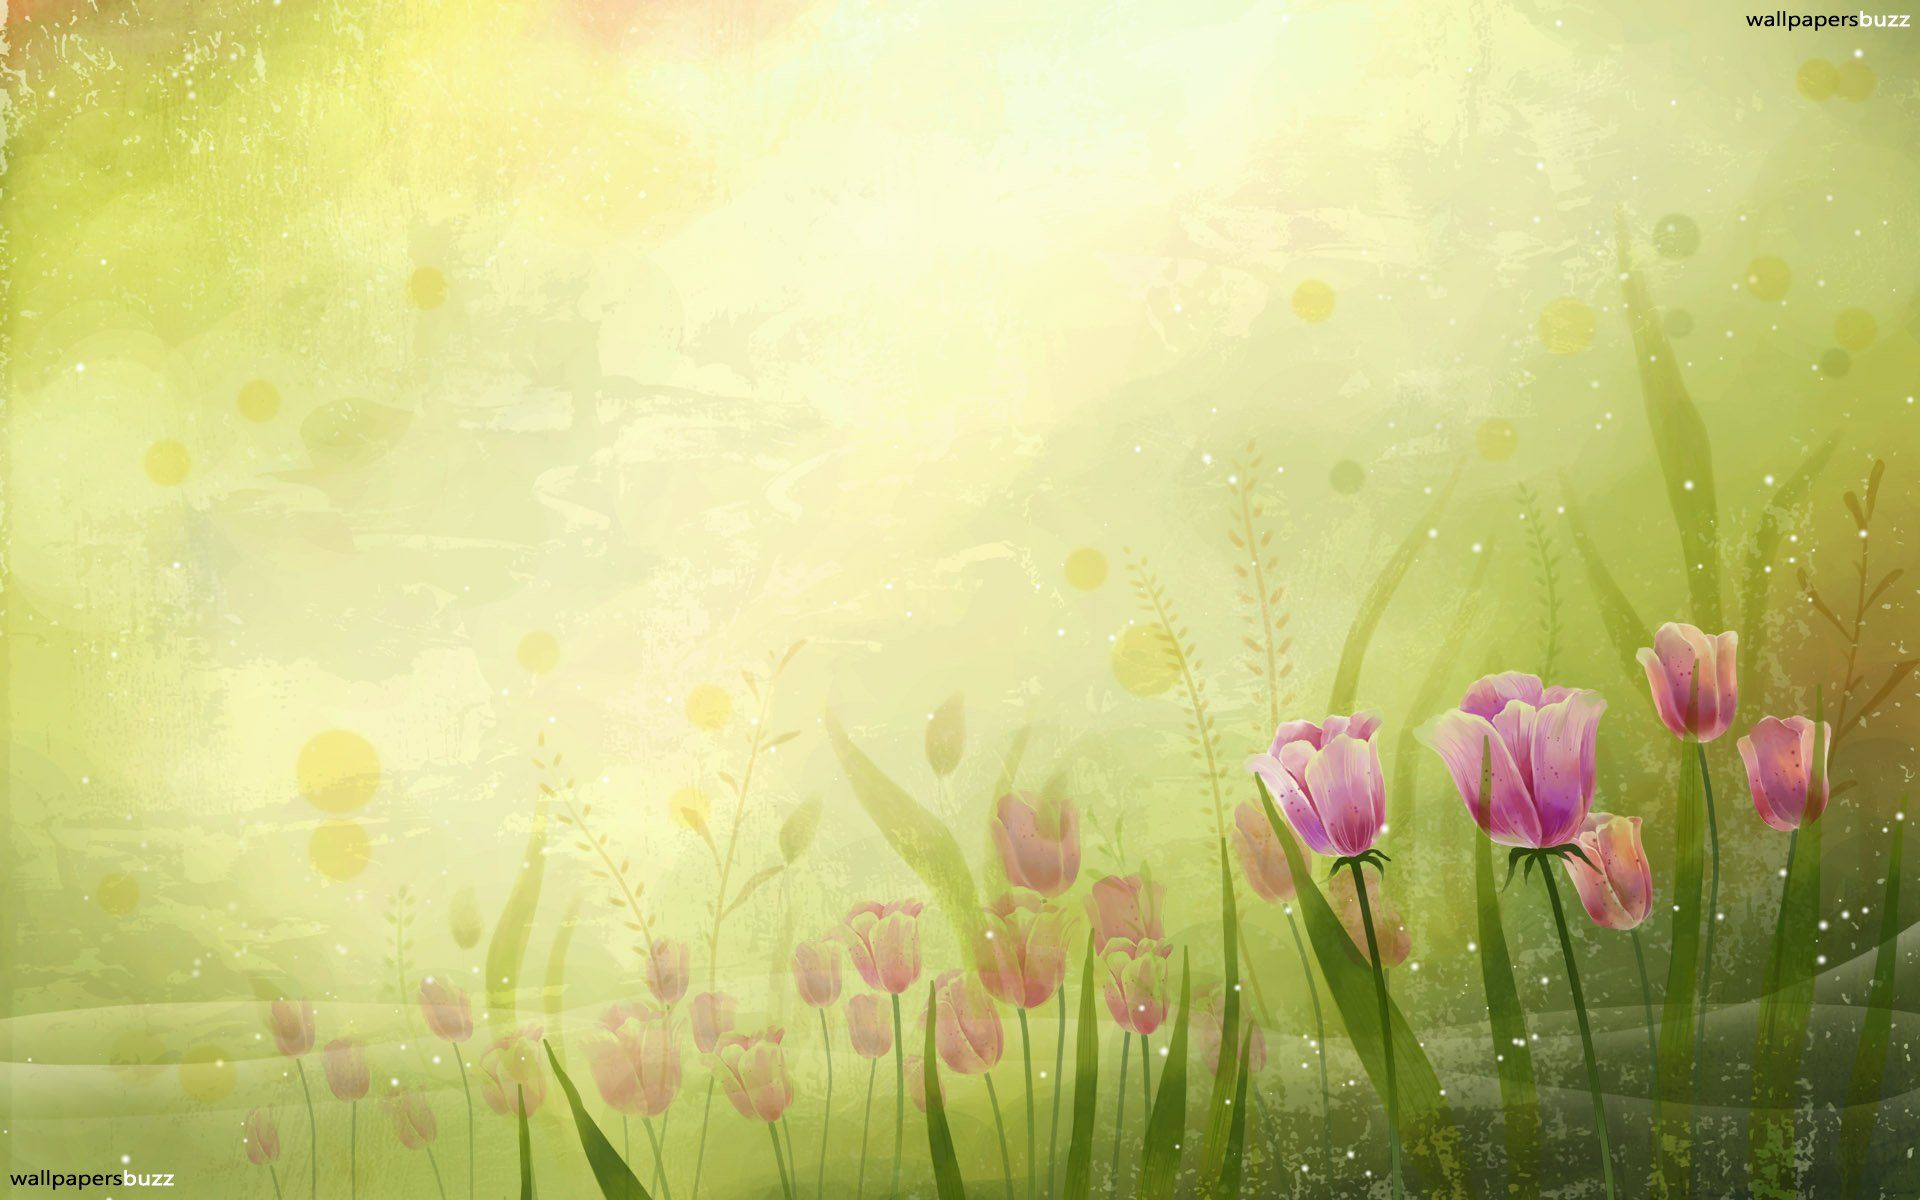 Abstract Tulips Wallpaper